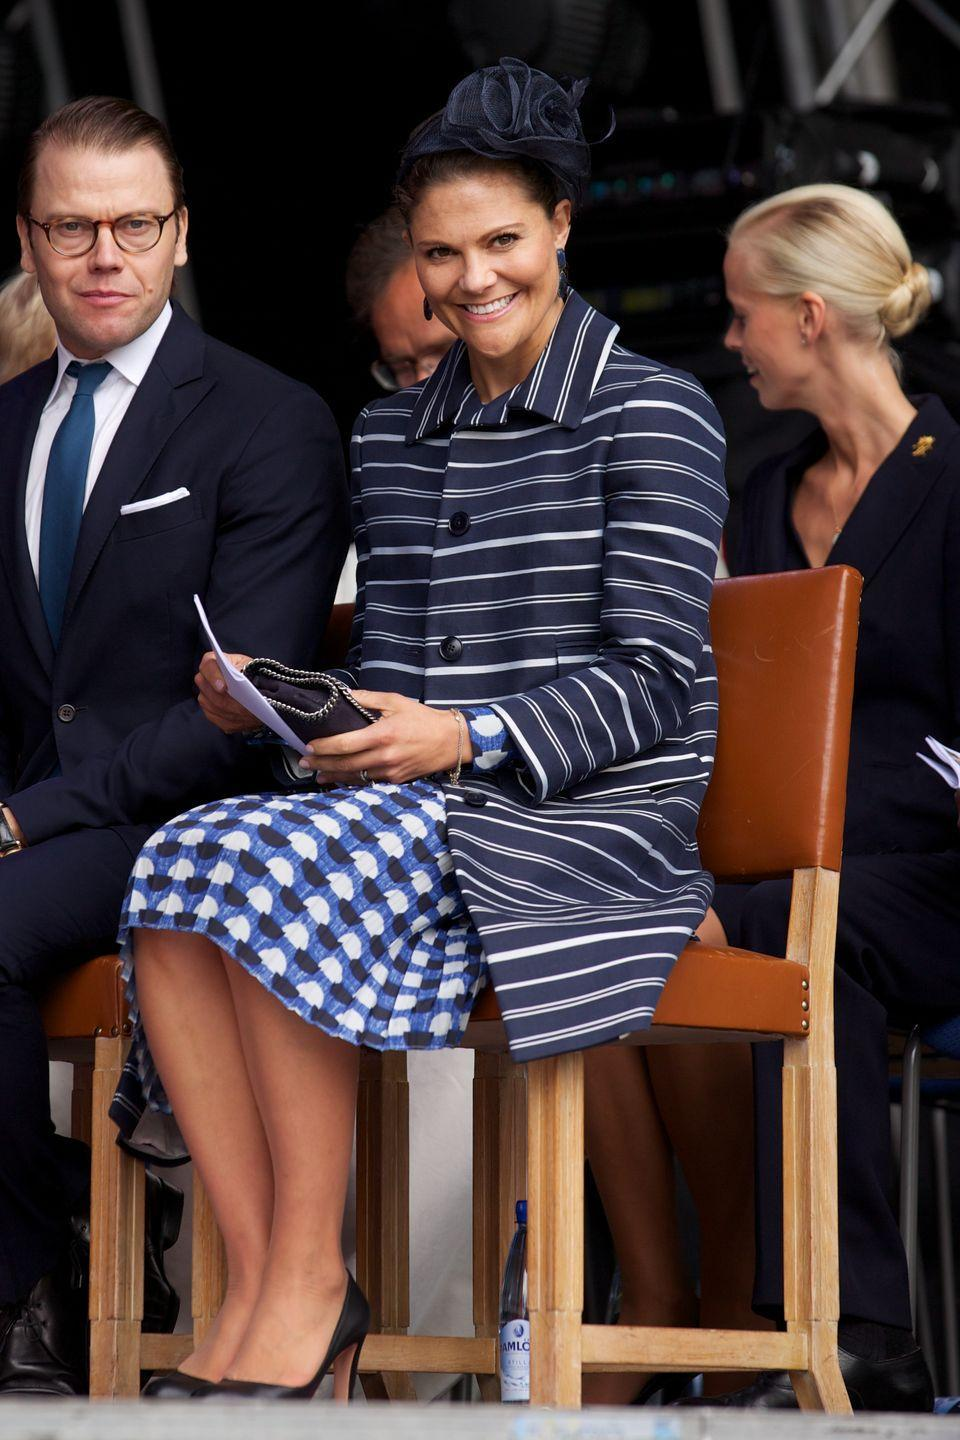 <p>Once Princess Victoria takes the throne, she'll be the first woman to do so in Sweden since the 1700s—and she'll do so in style. Here she is mixing prints for a reserved yet stylish look.</p>